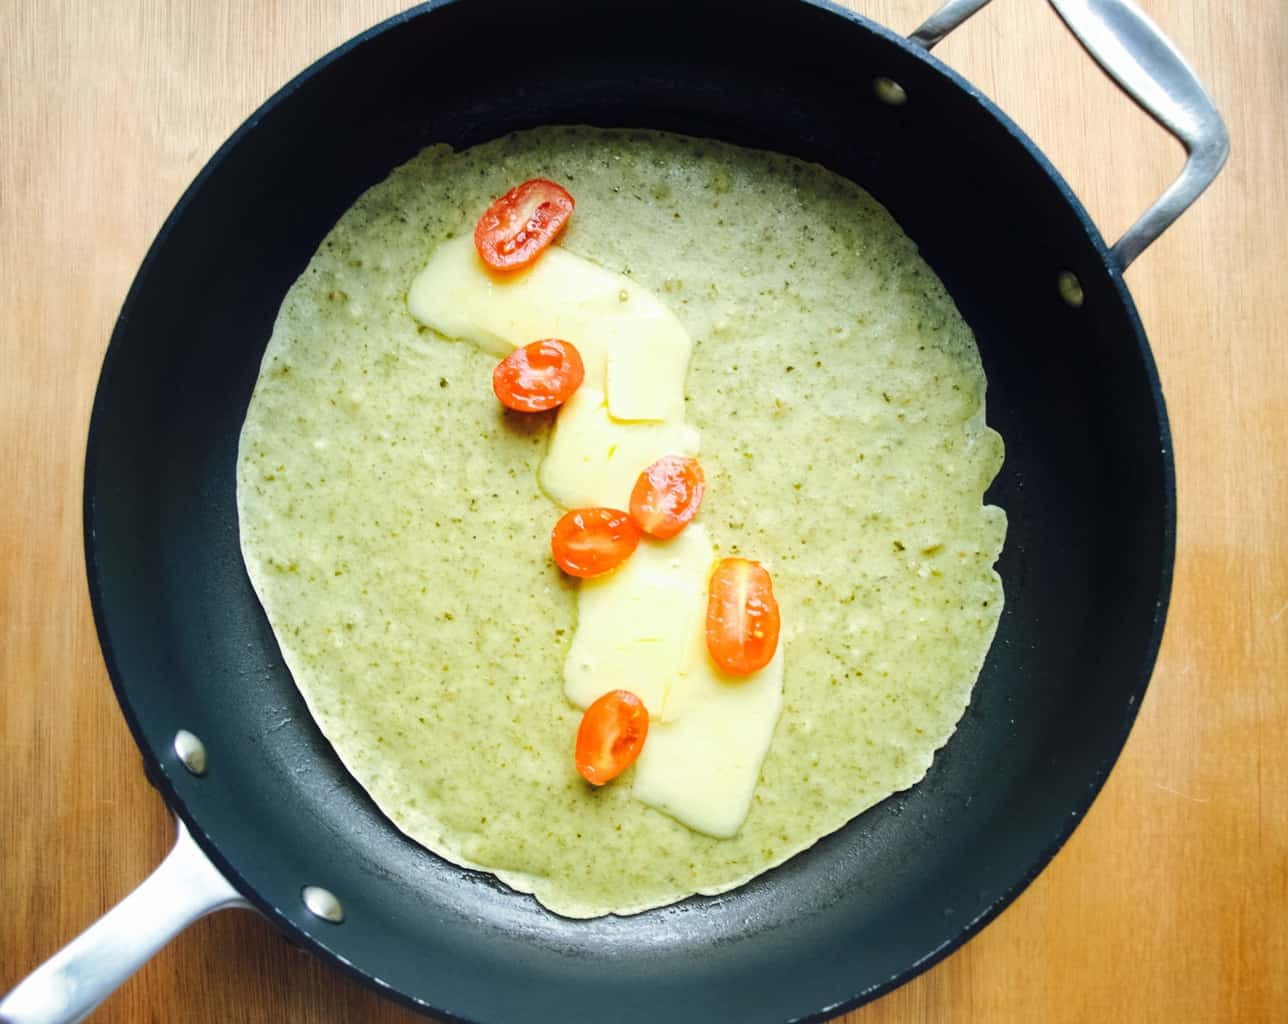 Pesto crepes filled with cheese recipe